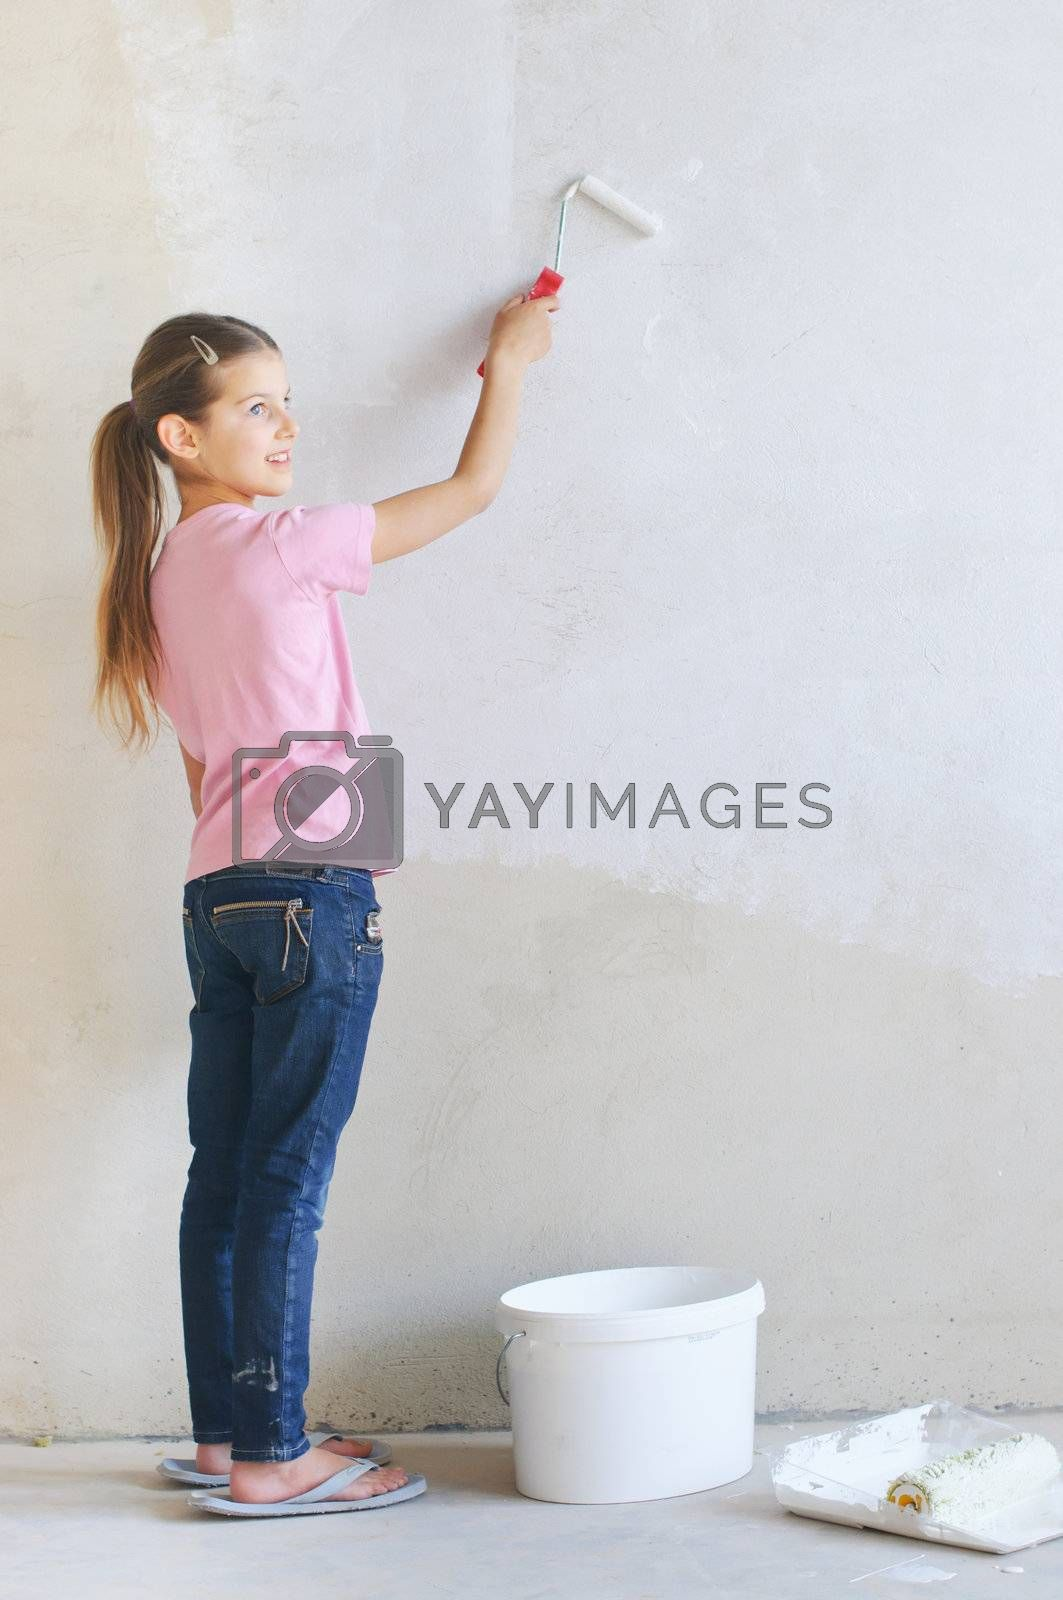 Home Improvement: Blond Woman Painting Wall Stock Image